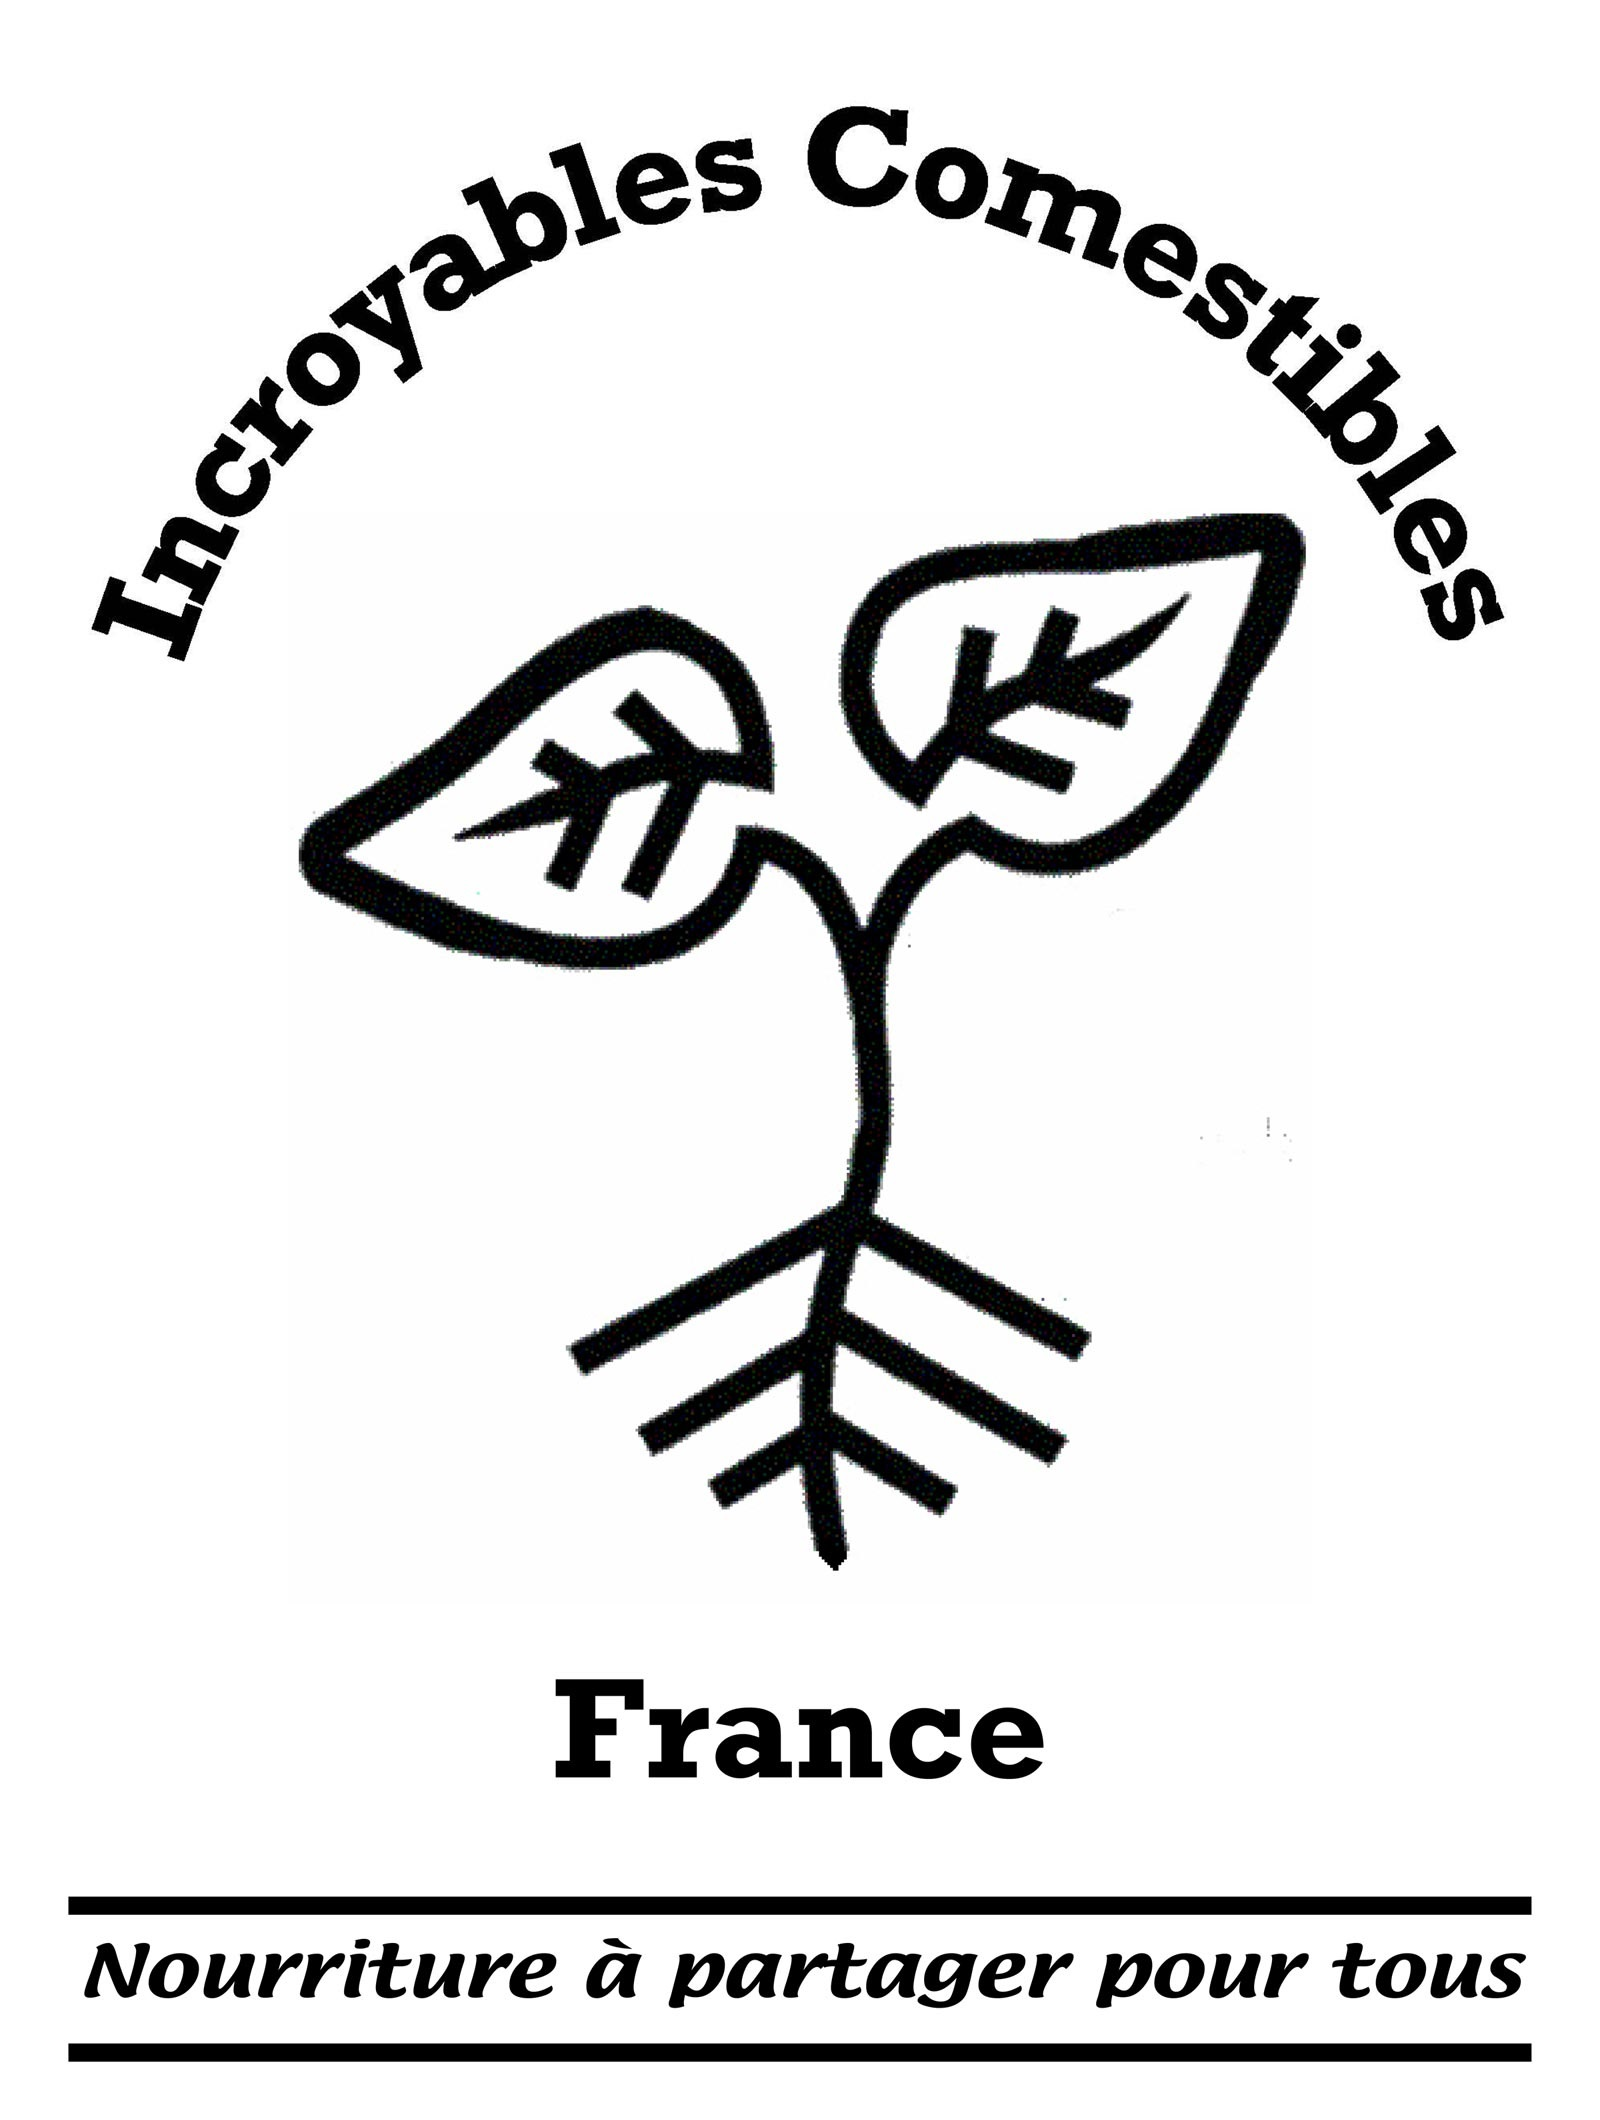 Association - Incredible Edible France - Les Incroyables Comestibles en France